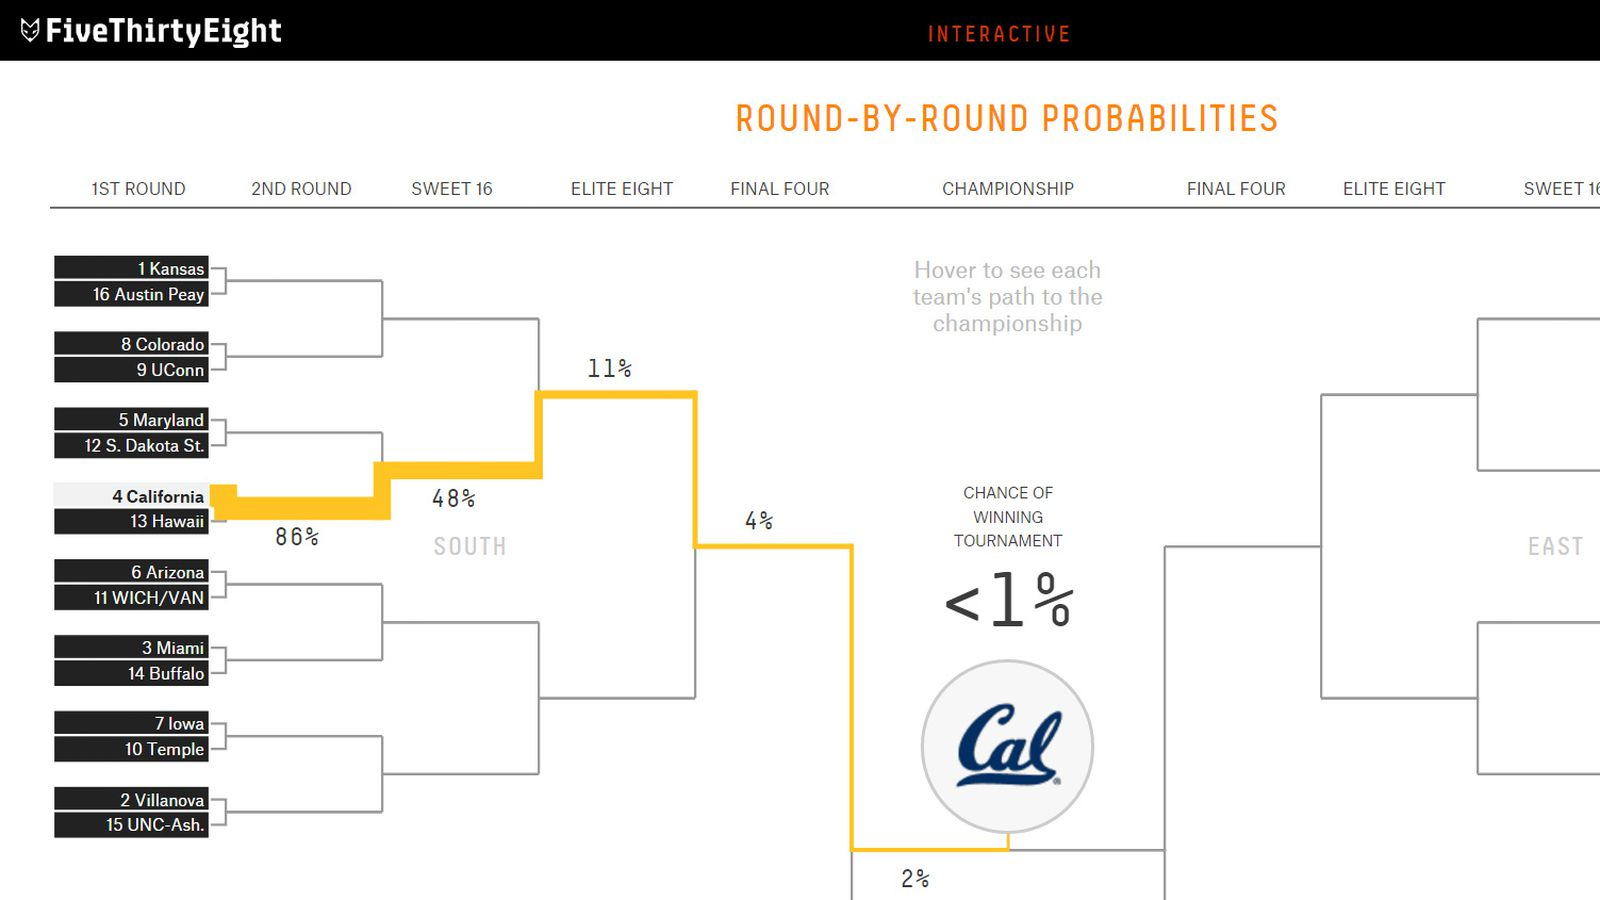 FiveThirtyEight predicts Cal MBB's chances to win the NCAA